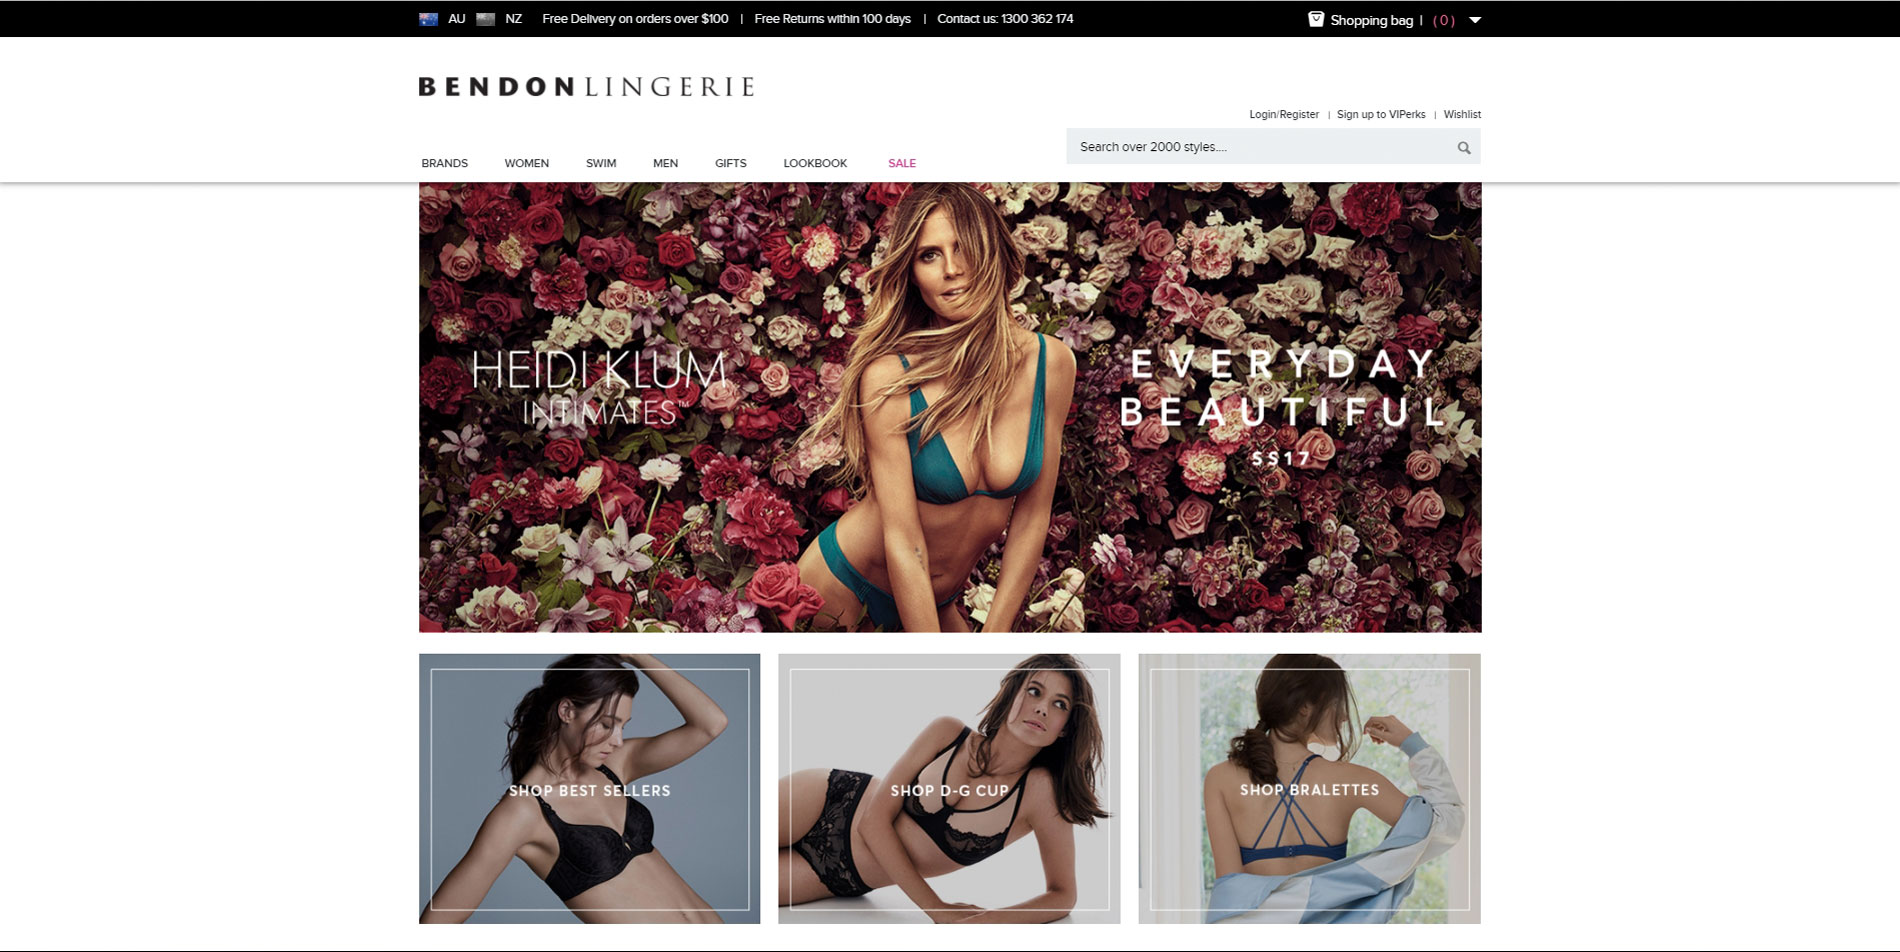 bendonlingerie-home-page